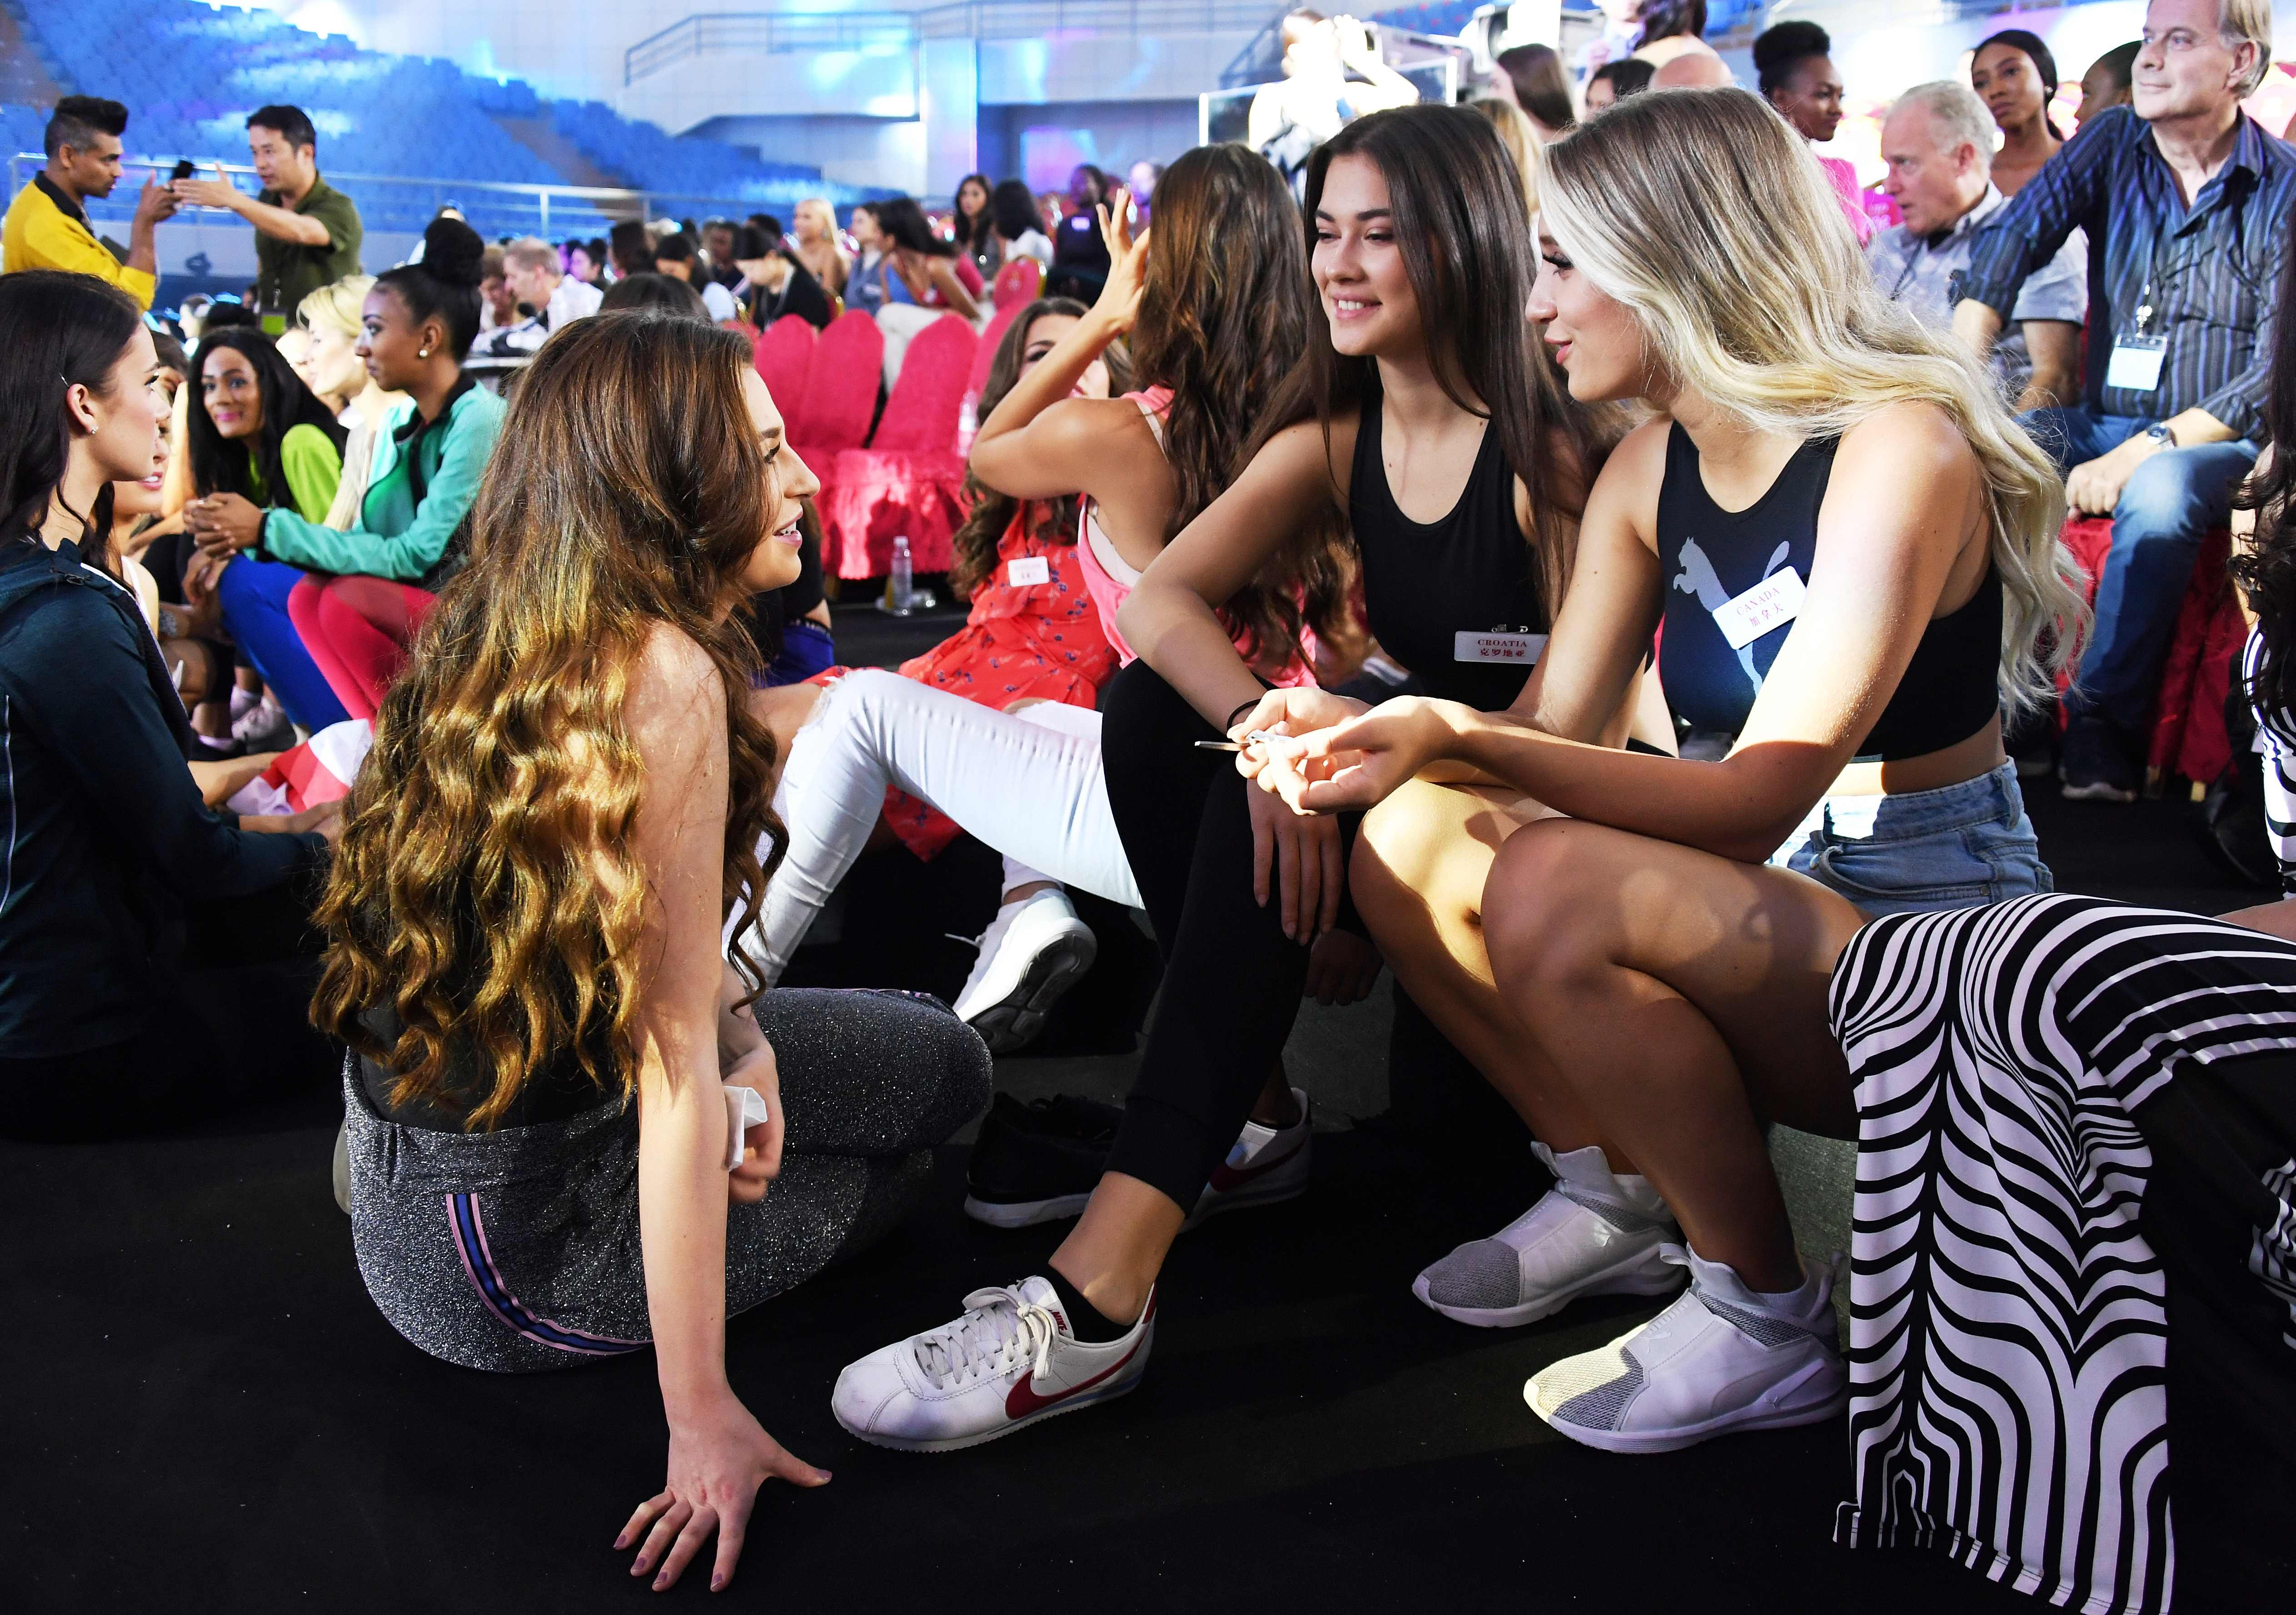 a85d3046f34 Miss Mexico Vanessa Ponce de Leon (R) reacts after being crowned the 68th  Miss World by Miss World 2017 Manushi Chhillar (L) in Sanya